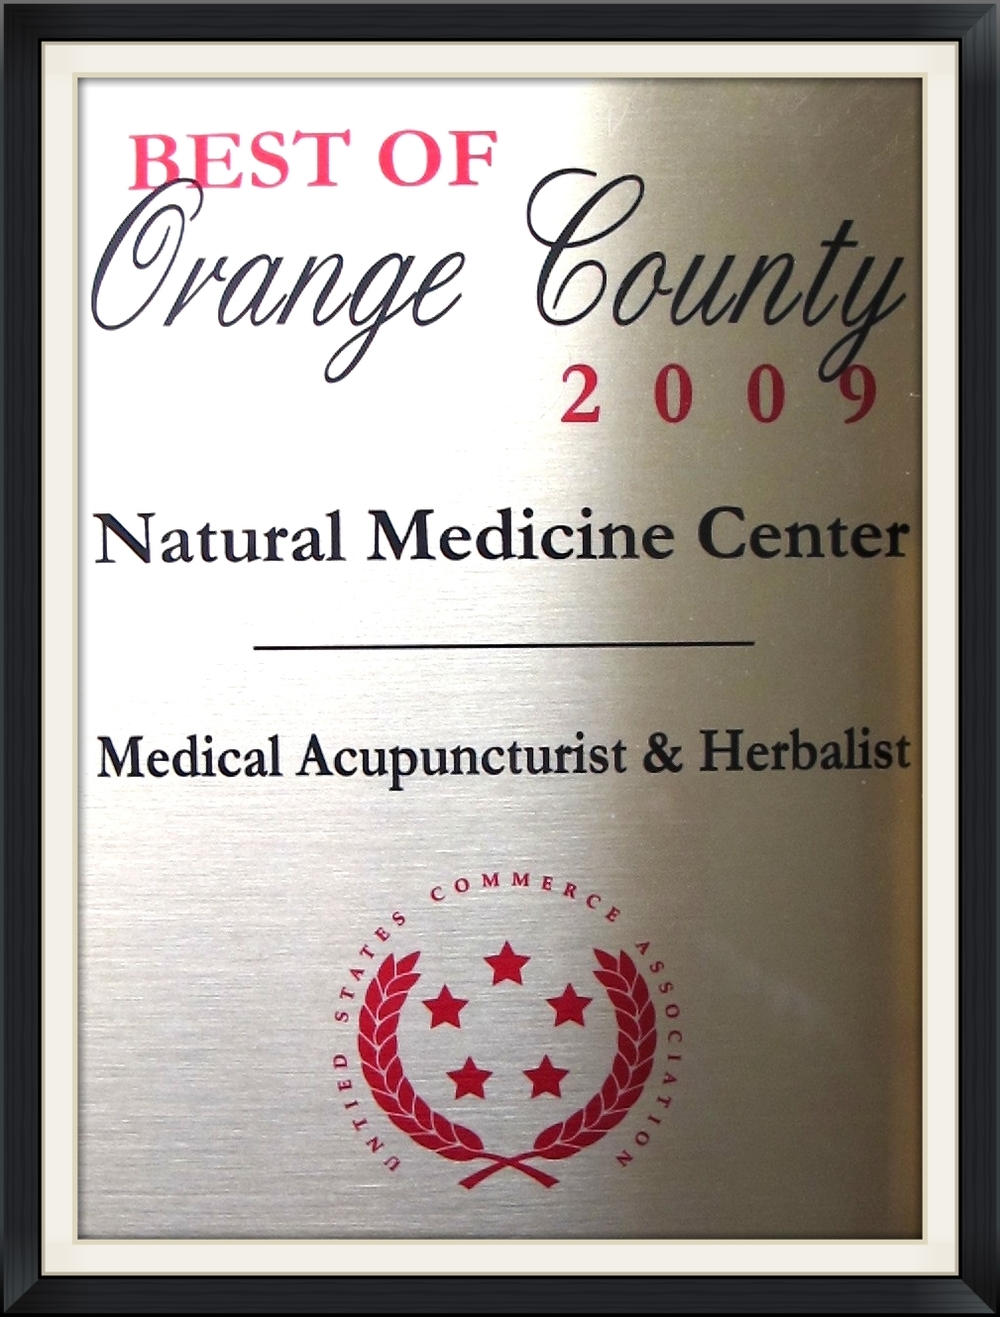 BEST OF ORANGE COUNTY - NATURAL MEDICINE CENTER